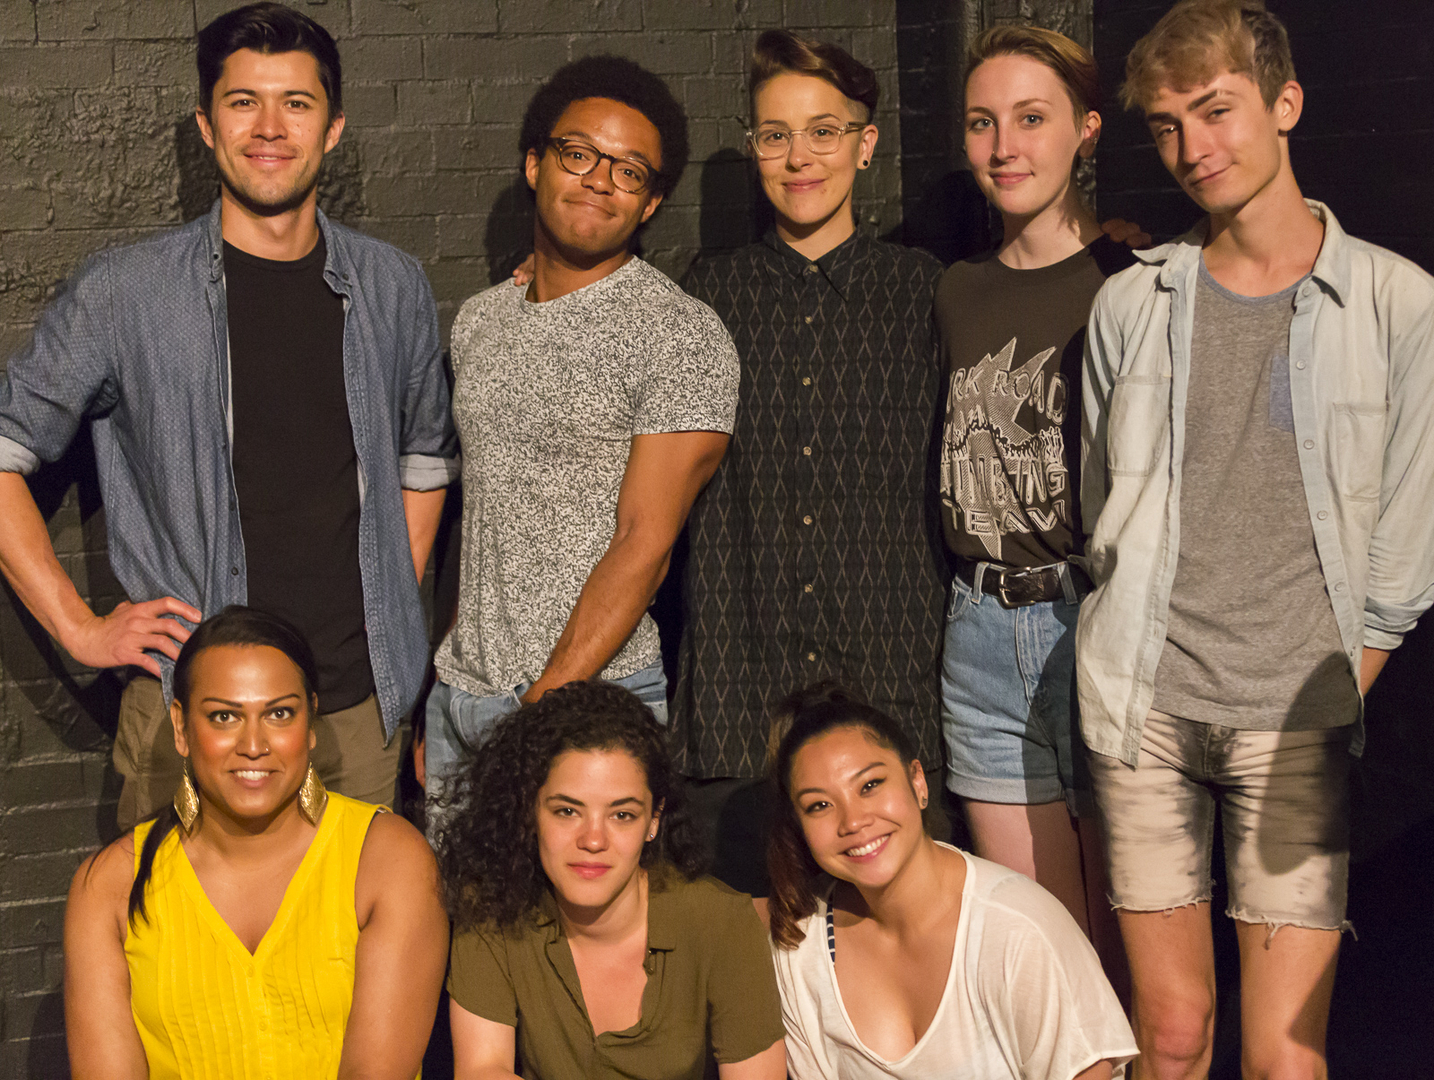 The Cast of NORMATIVITY. Photo by Steve Riskind.